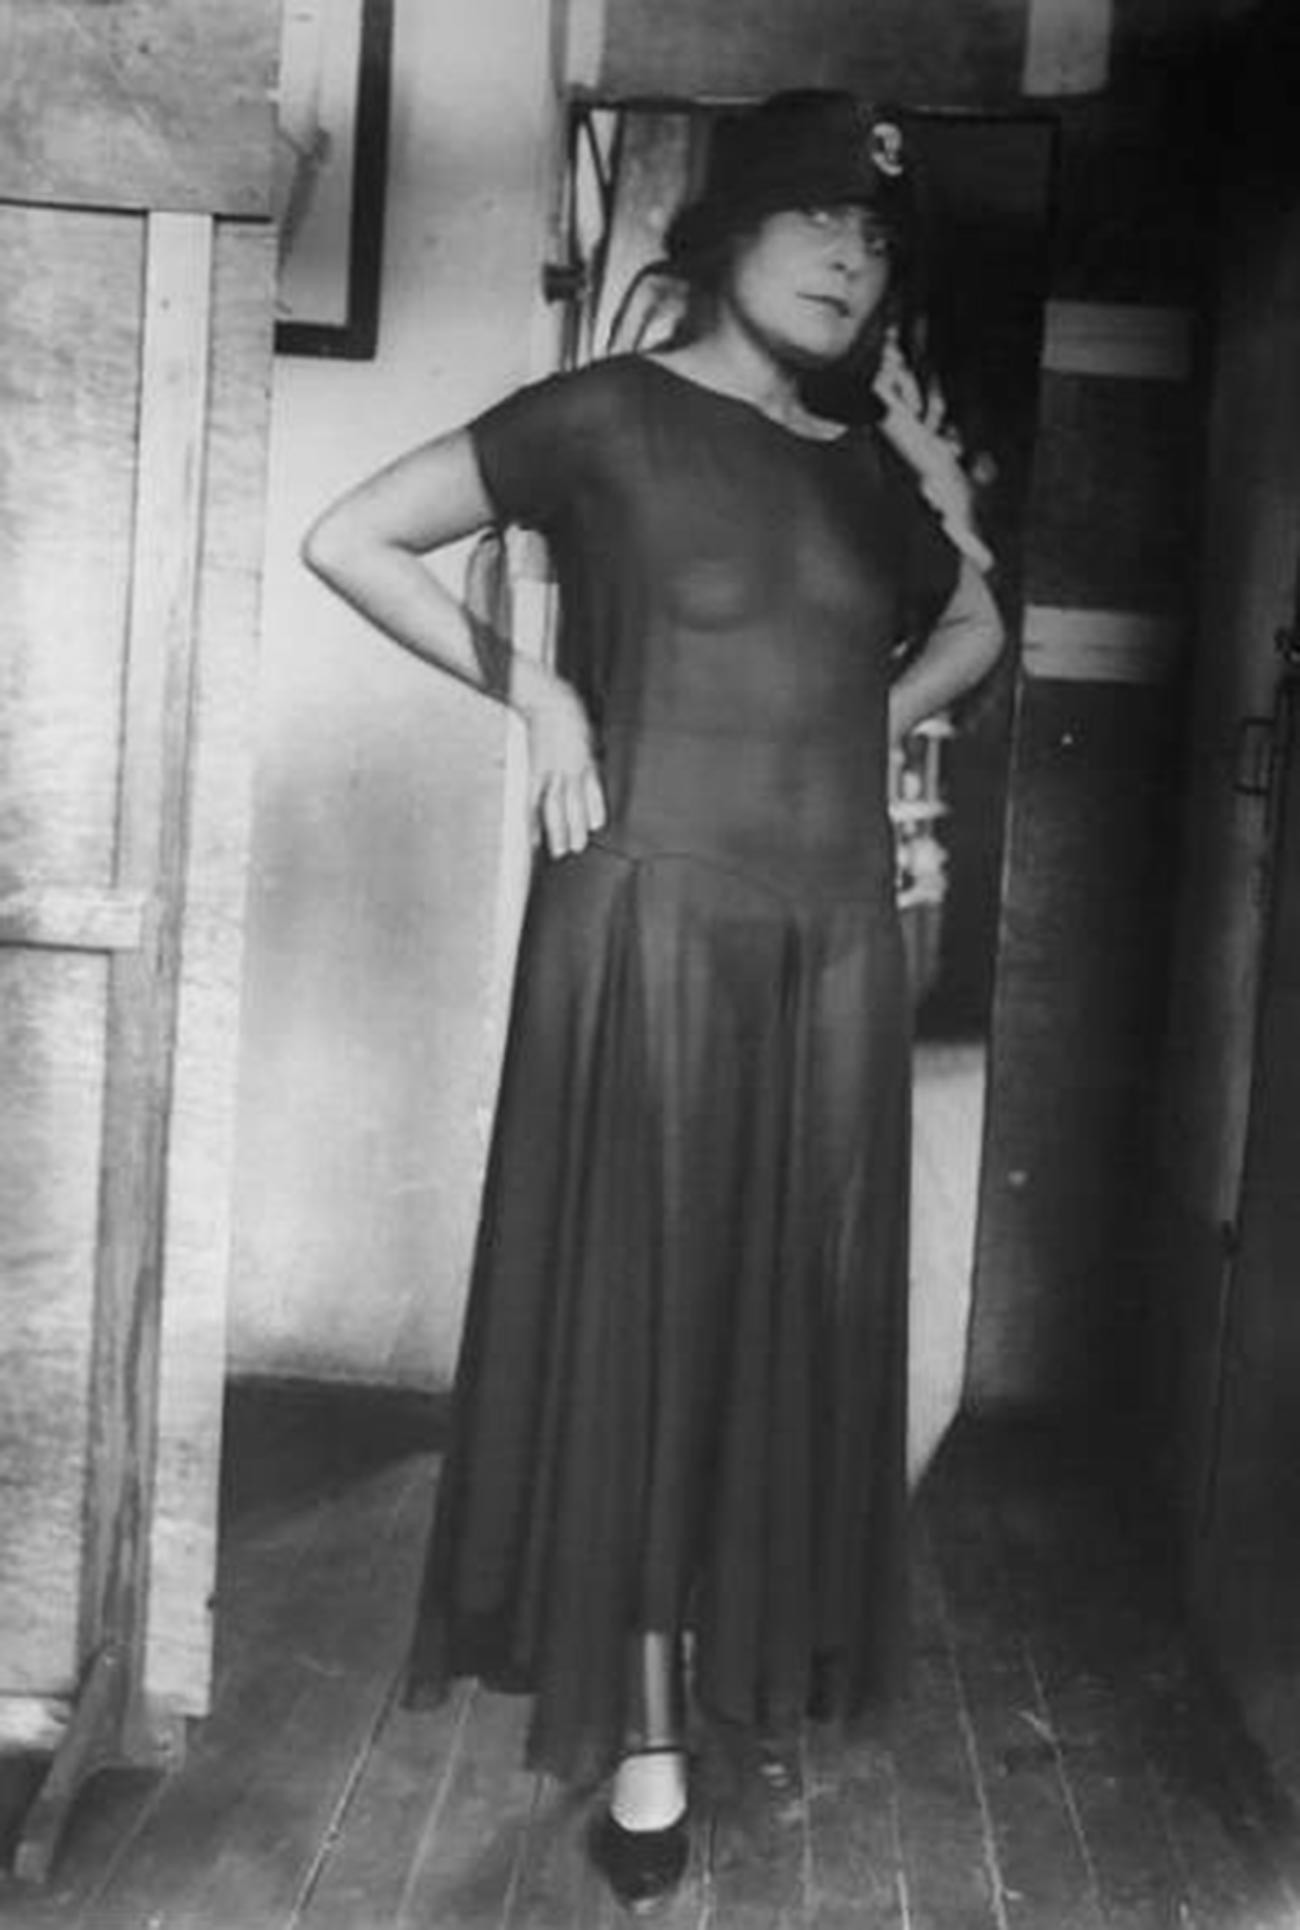 Poet Vladimir Mayakovsky's muse, Lily Brik, in a transparent dress, 1924.